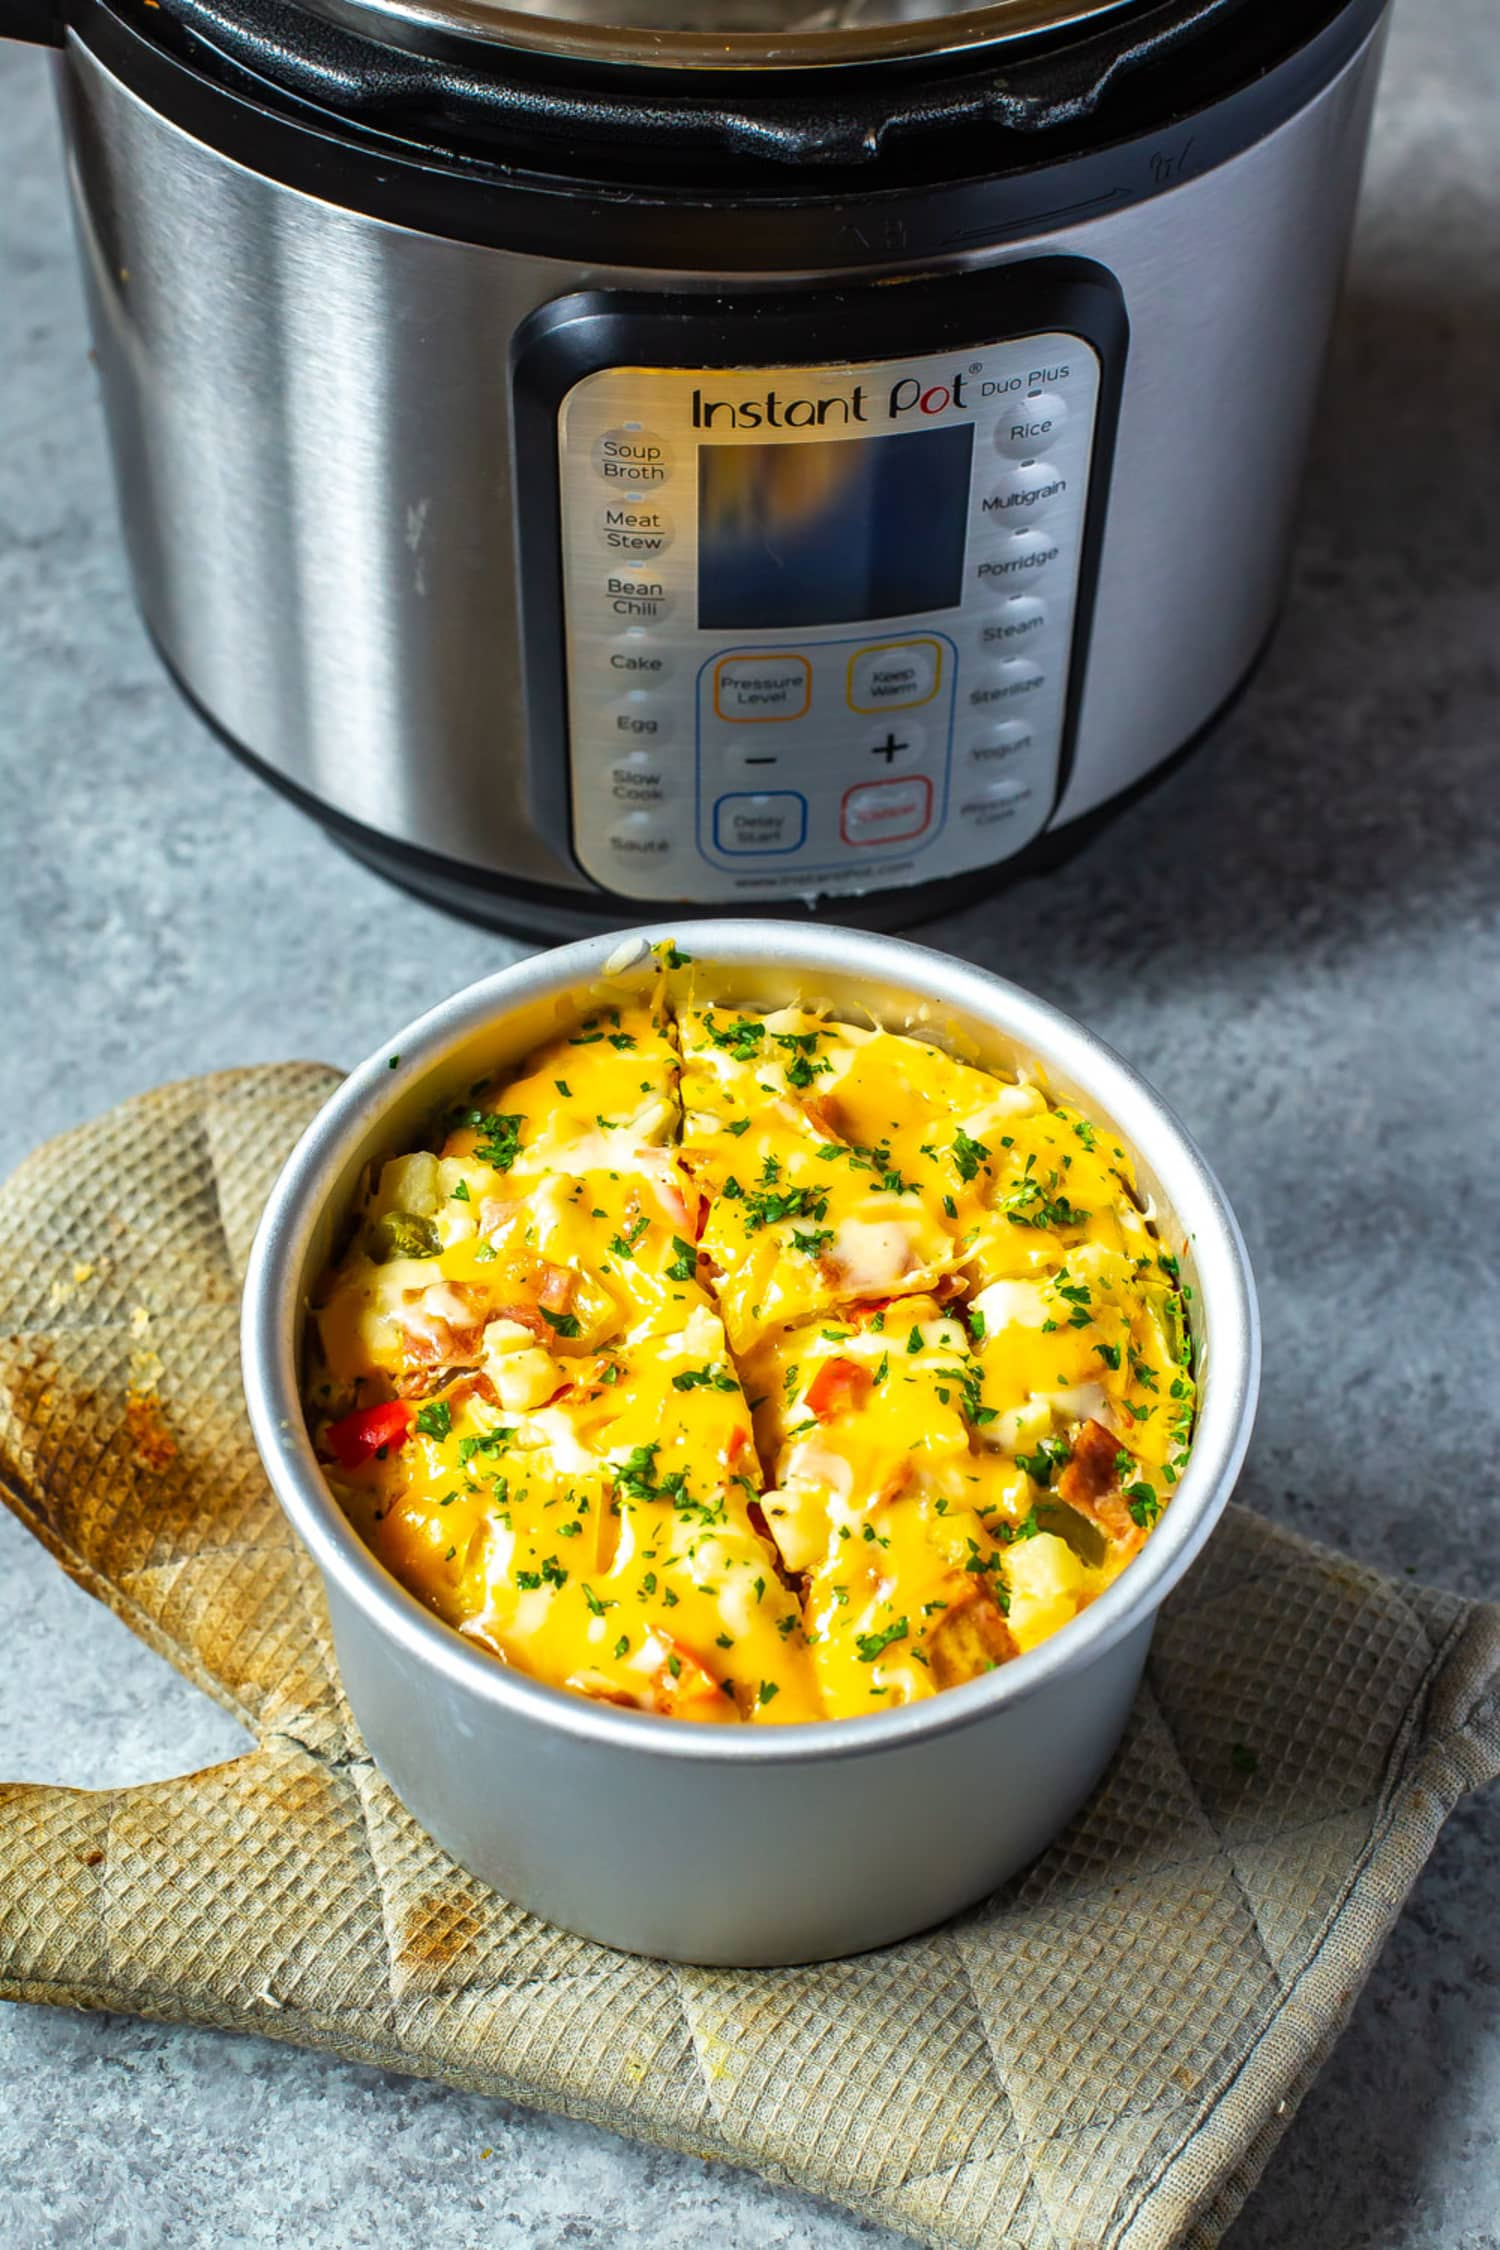 Here's How to Make a Week's Worth of Protein-Packed Breakfasts in Your Instant Pot